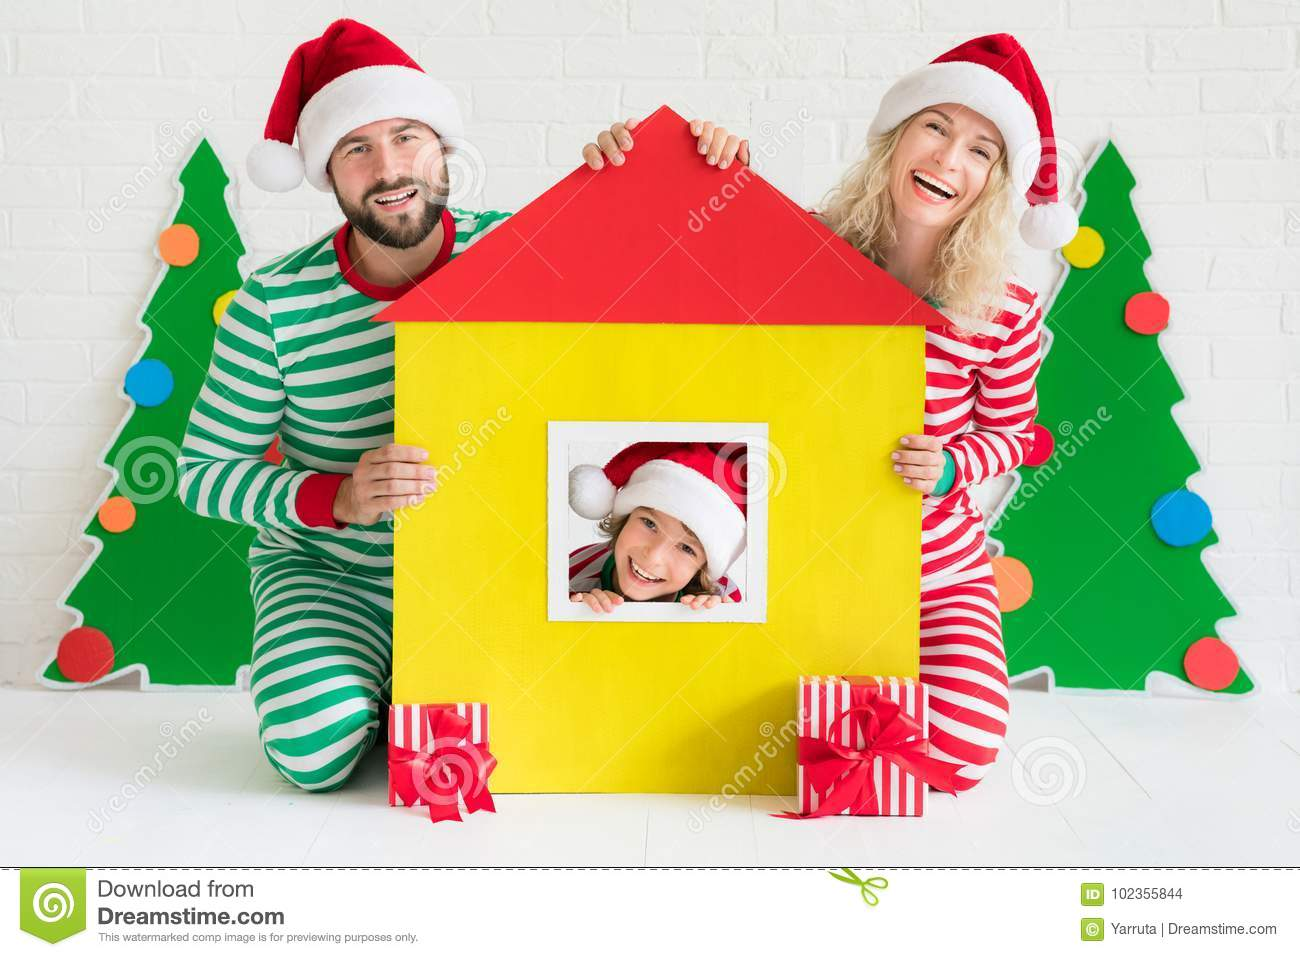 Christmas Home Holiday Design Concept